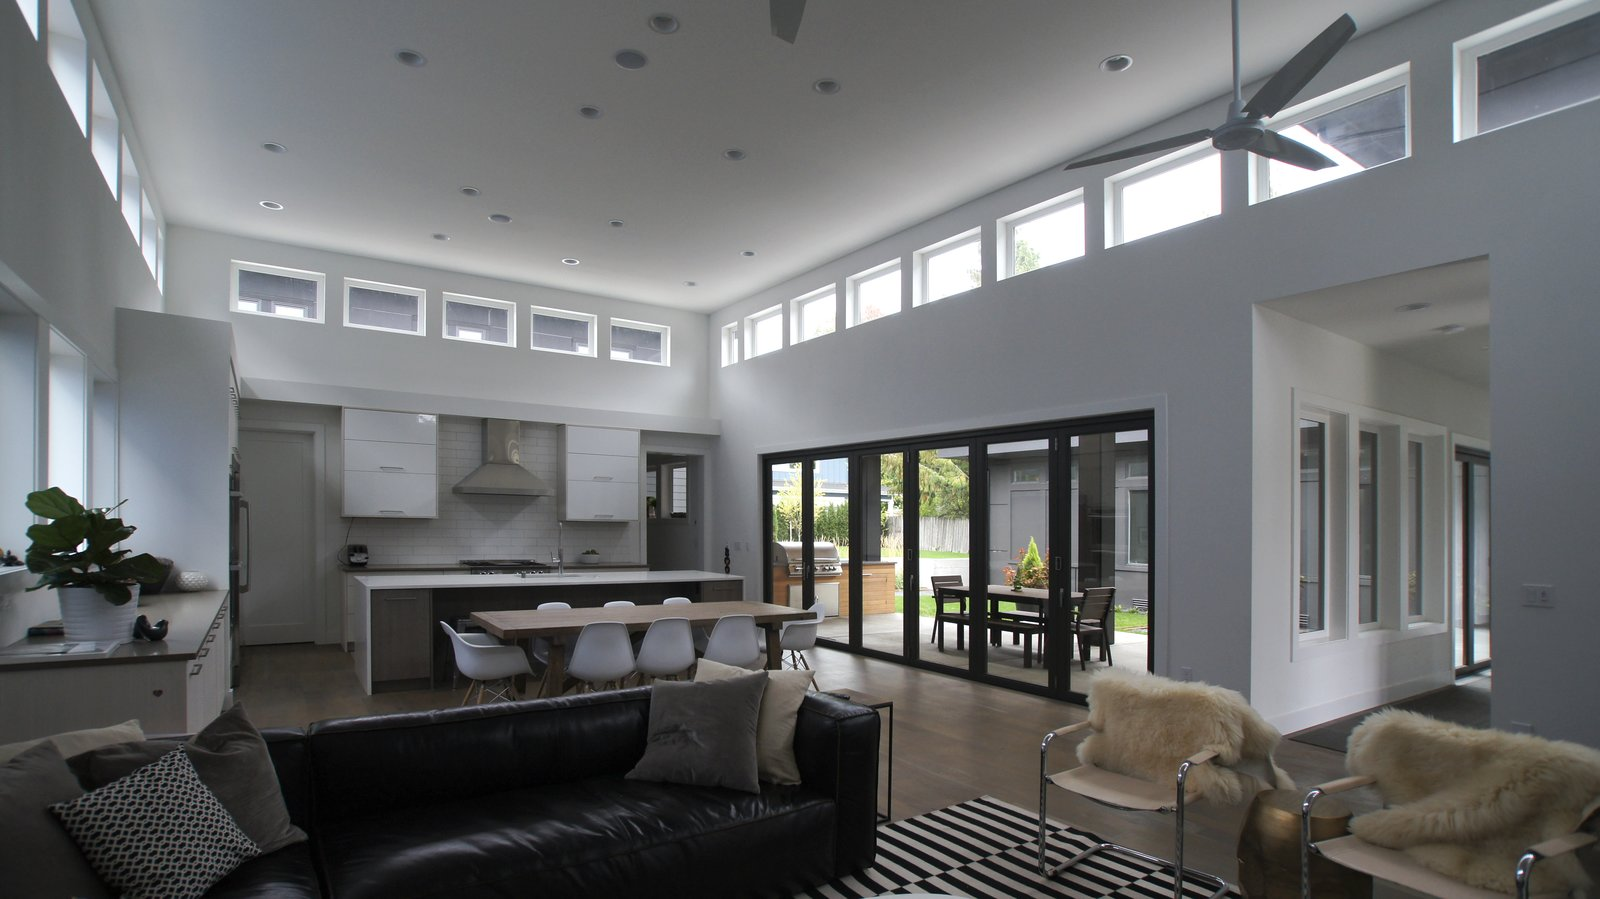 High ceilings were a priority for the clients and the clerestory windows create an illusion that extends the ceiling even higher. Direct access to the deck through the glass doors opens the space even further and seamlessly connects one room to another.  Modern Courtyard Home by Atelier Drome